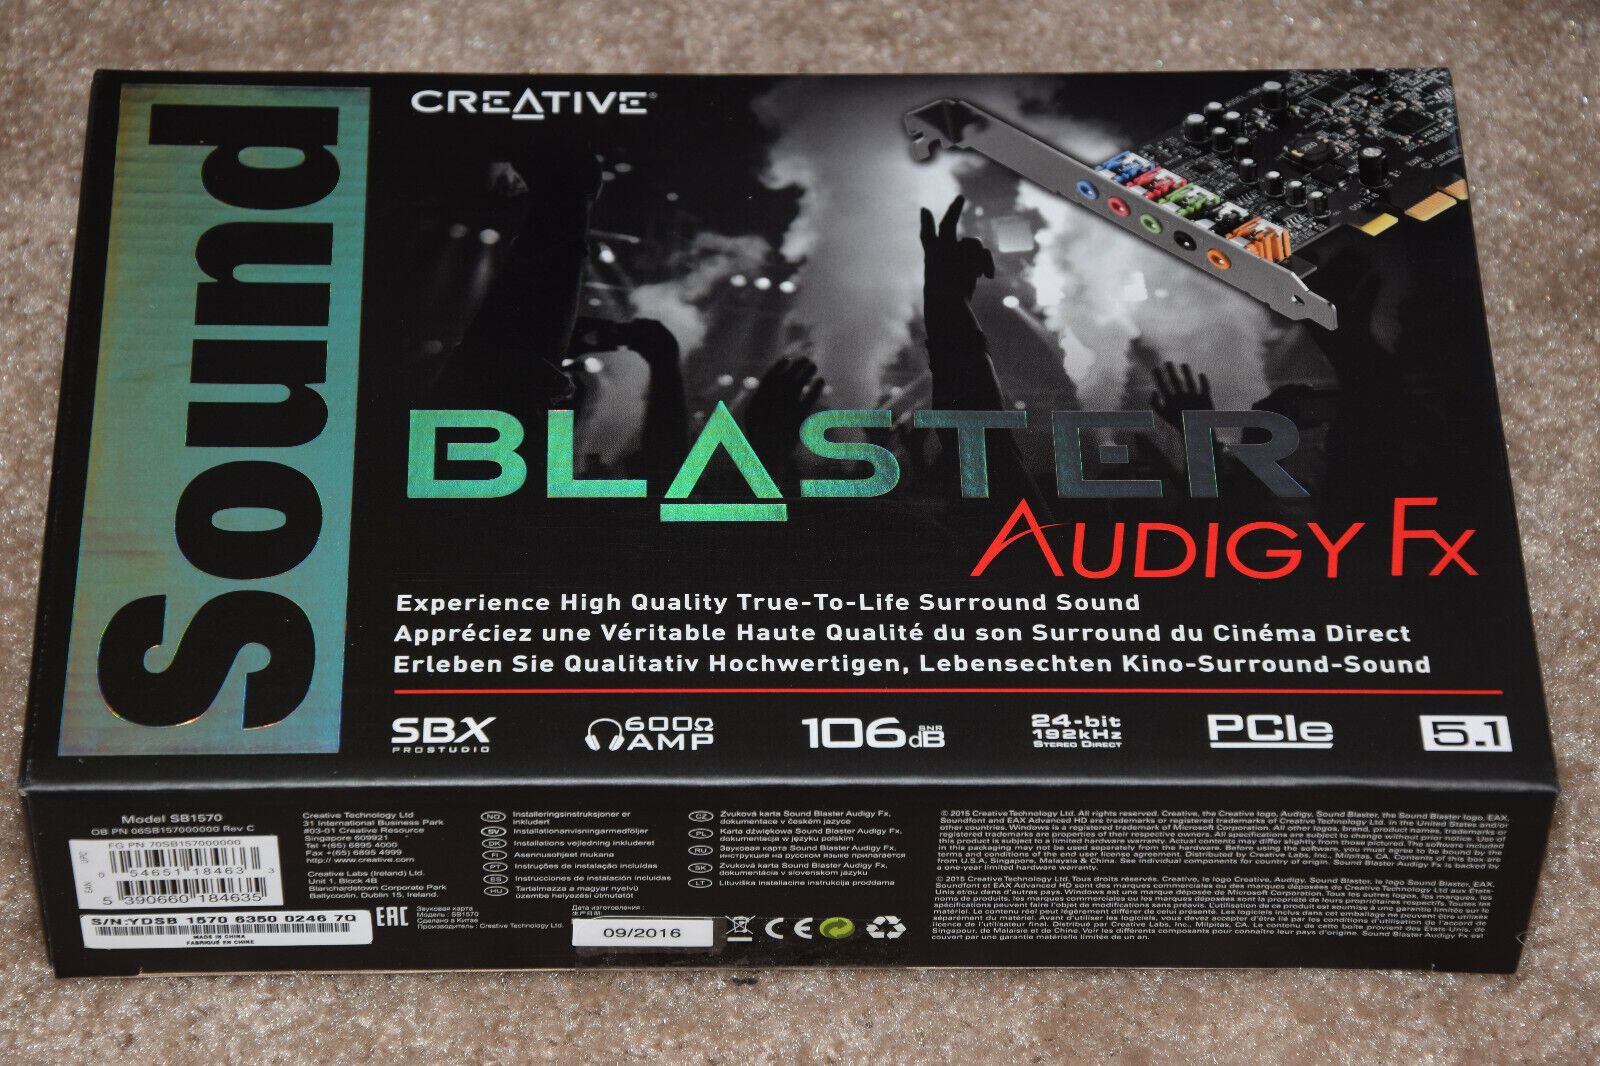 Creative Sound Blaster Audigy FX 5.1 PCIe Audio Card with Hi